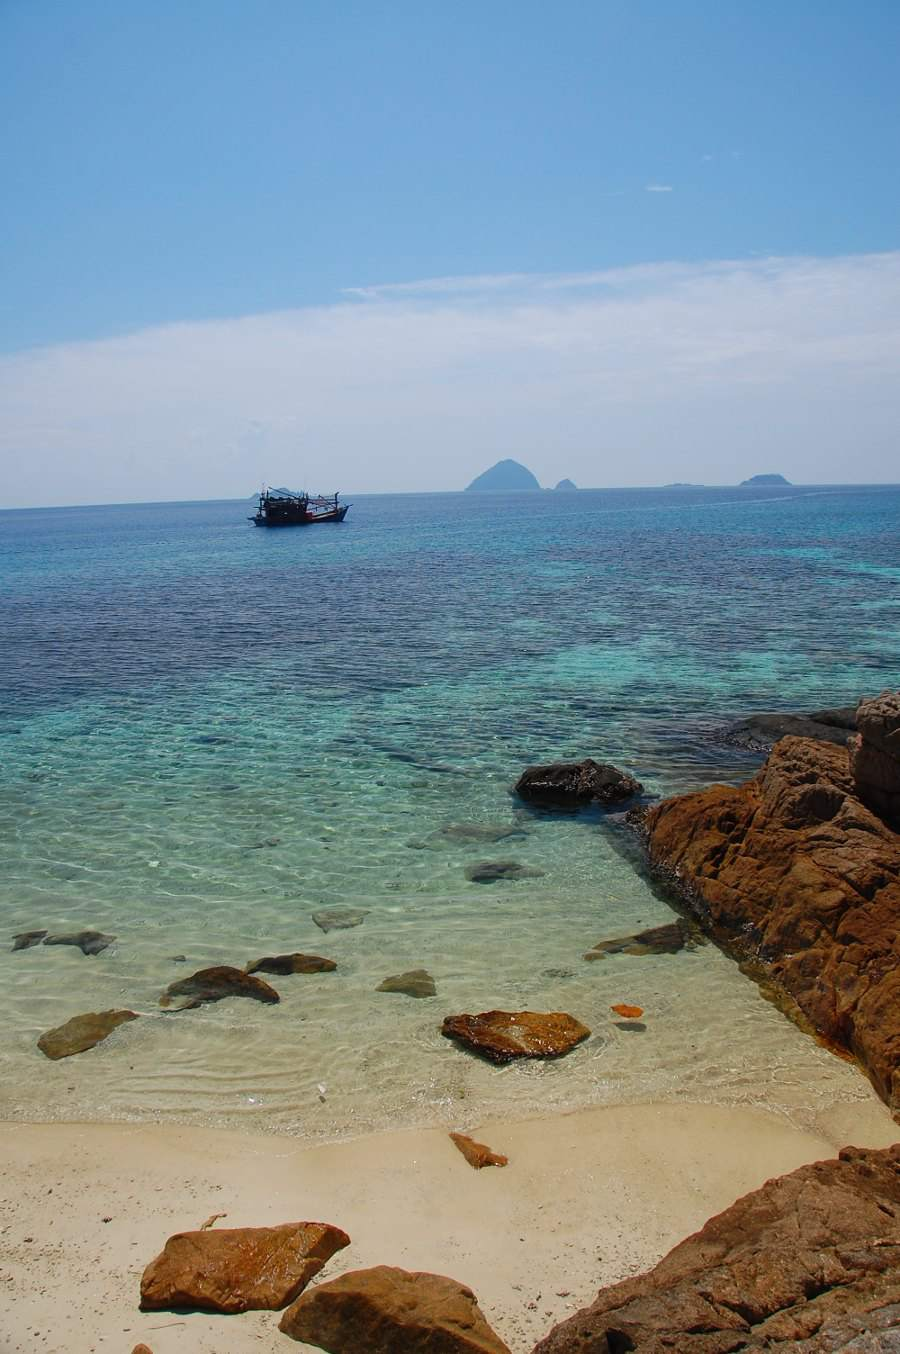 Diving in the Perhentian Islands